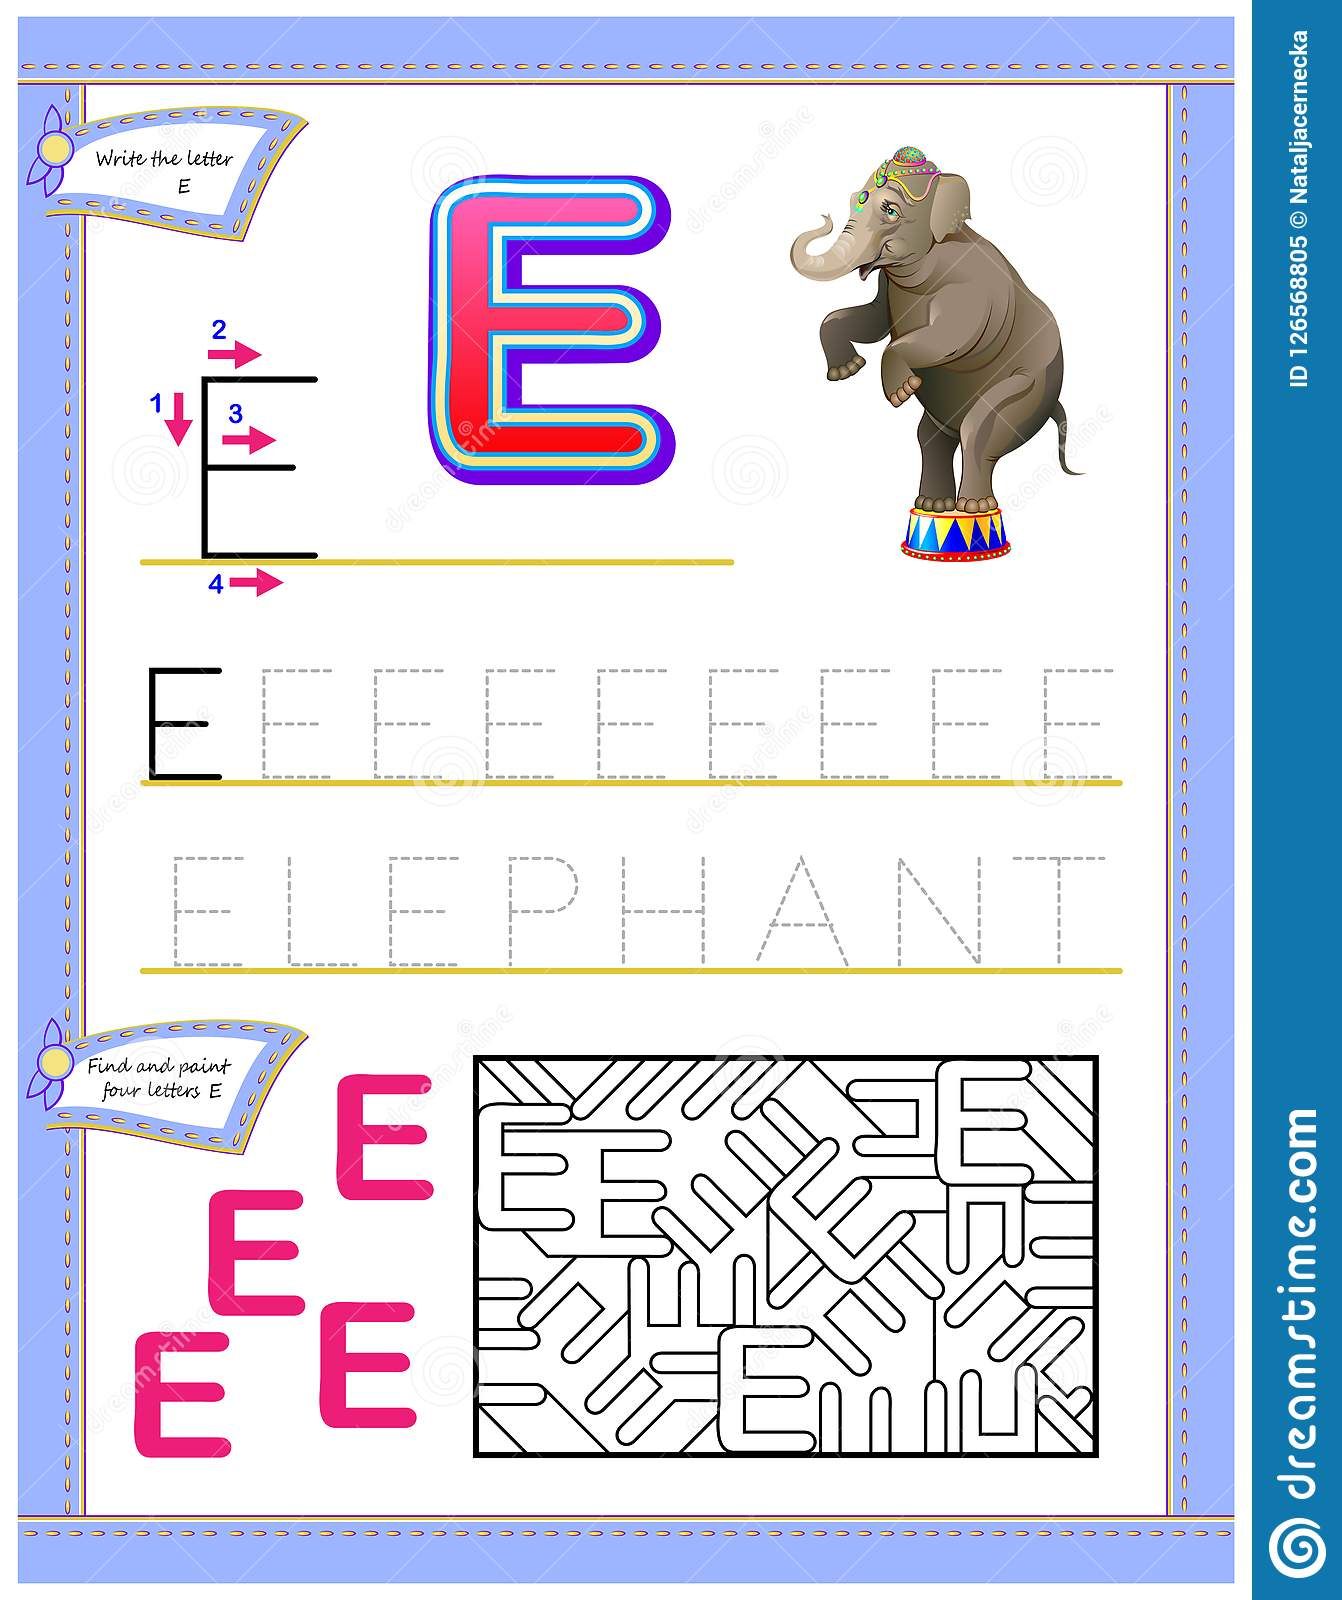 Worksheet For Kids With Letter E For Study English